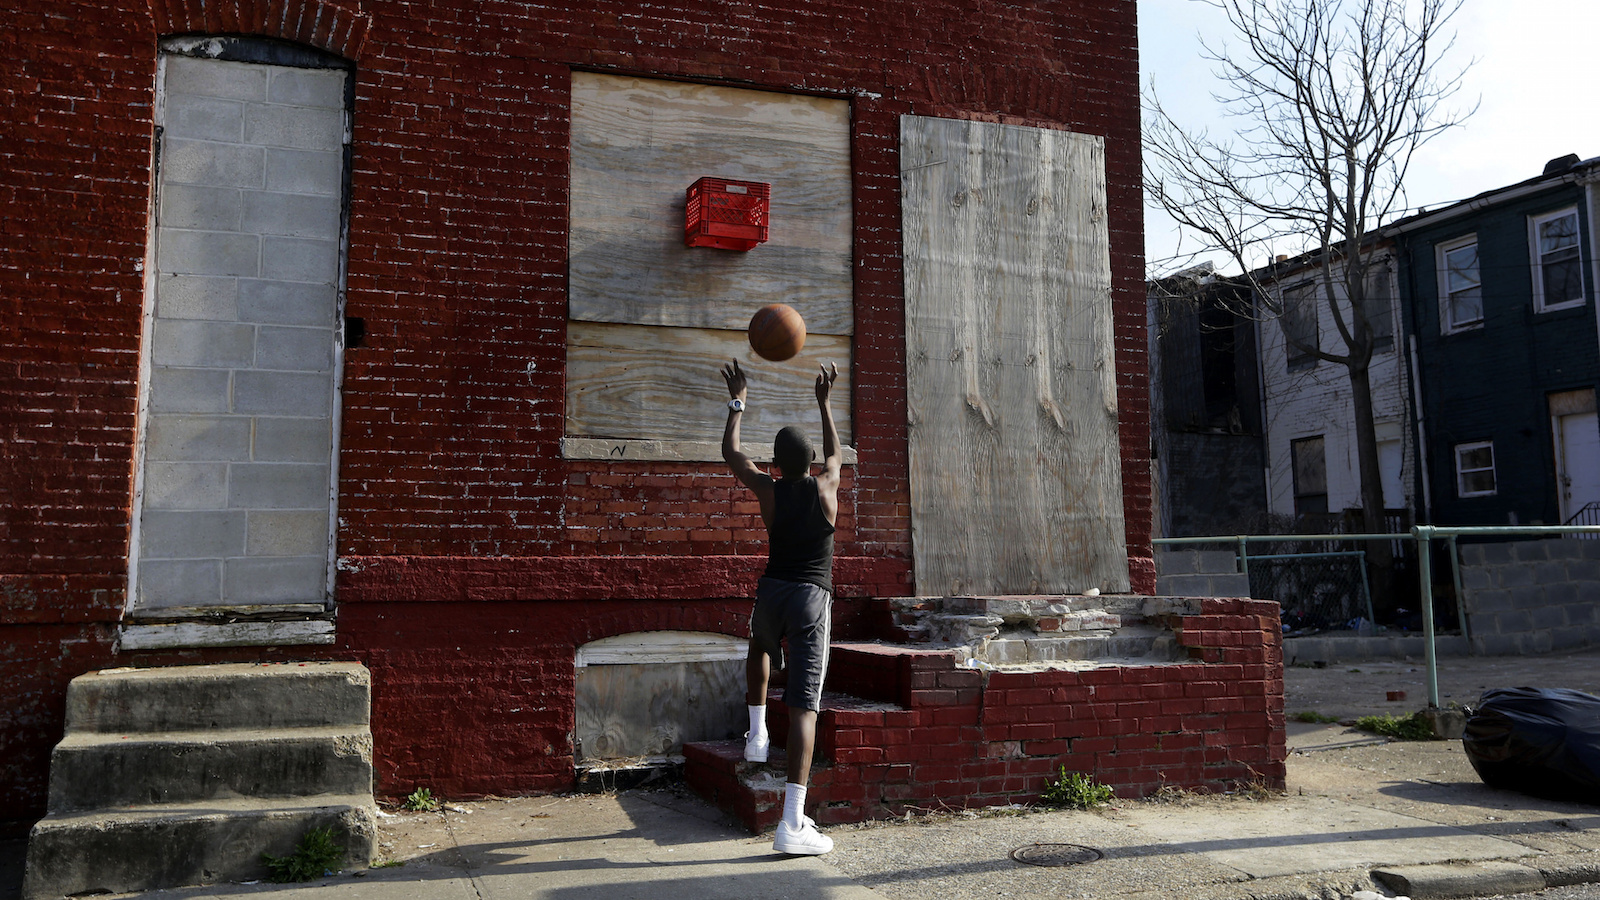 In this April 8, 2013 picture, a boy shoots a basketball into a makeshift basket made from a milk crate and attached to a vacant row house in Baltimore. The U.S. Census Bureau estimates that 20 percent of American children are impoverished. An estimated 16,000 buildings are vacant or abandoned in Baltimore.